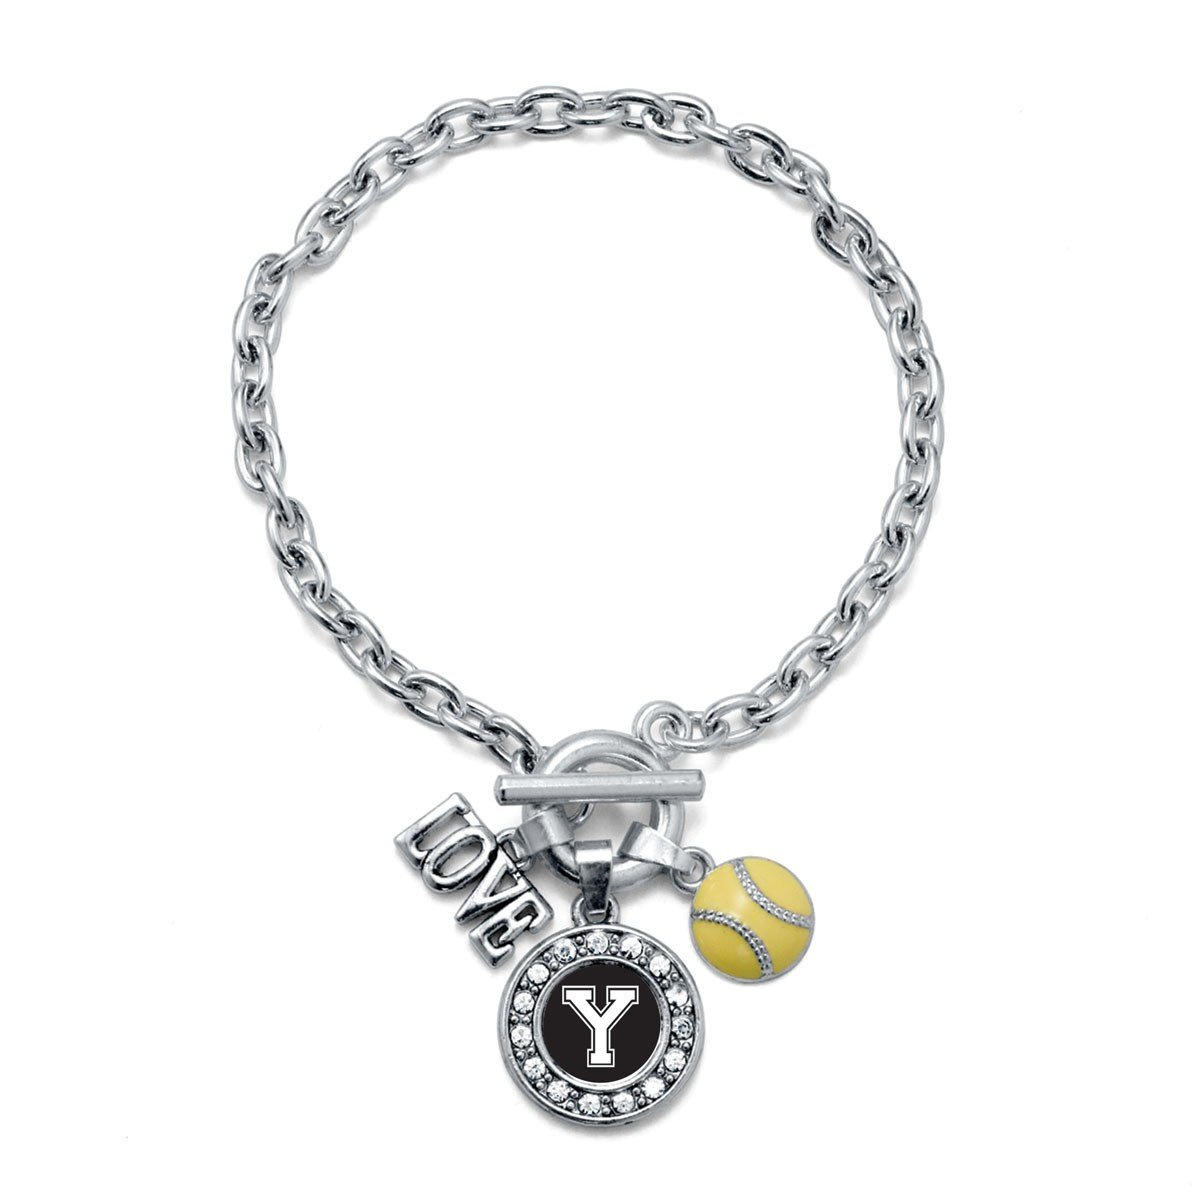 Inspired Silver My Sports Initial Circle Charm Softball Toggle Charm Bracelet Letter Y